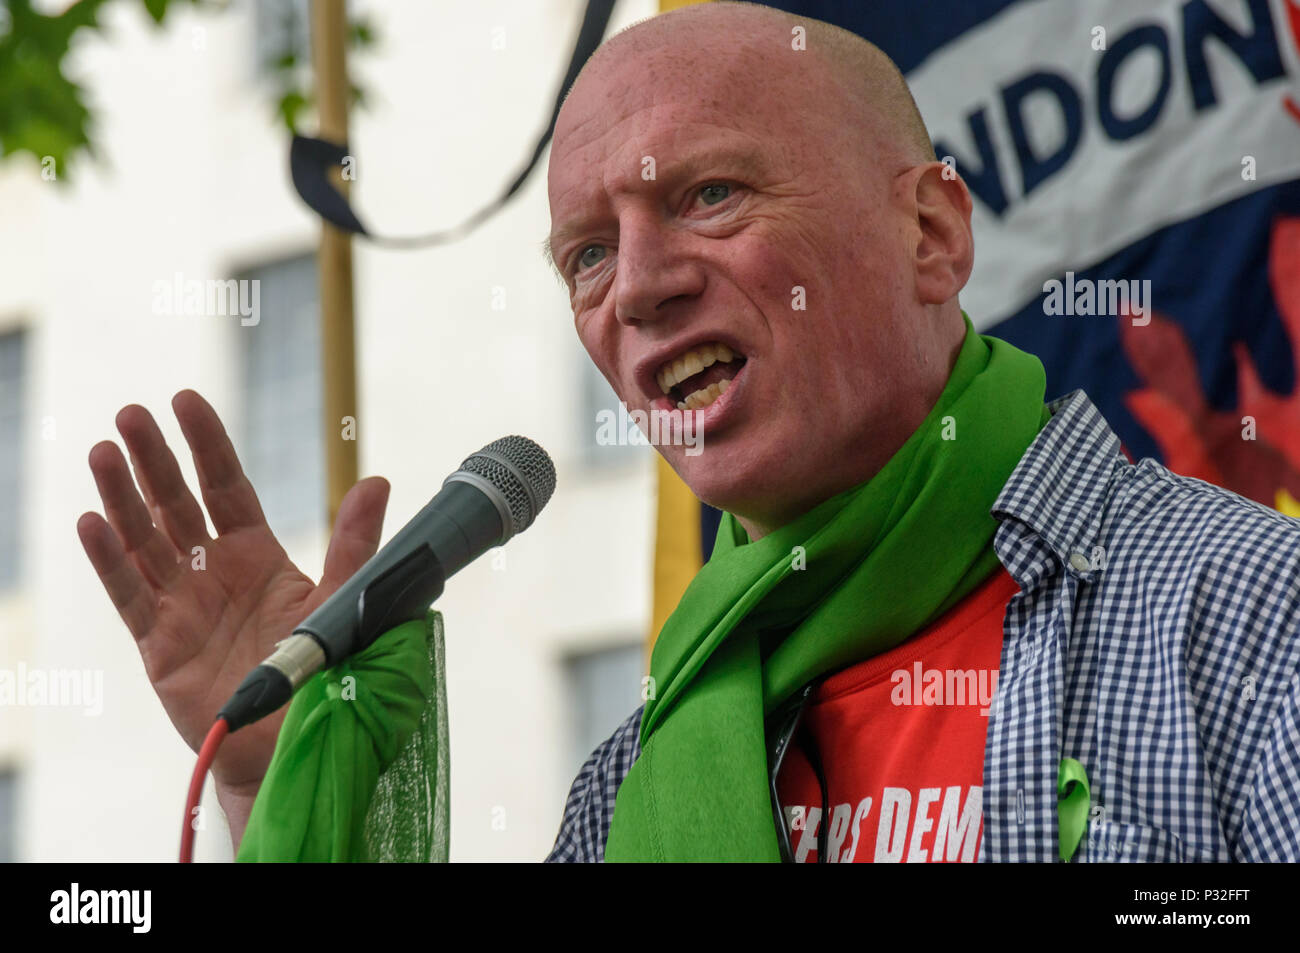 London, UK. 16th June 2018.FBU General Secretary Matt Wrack speaks at the protest at Downing St in solidarity with the 72 killed and the survivors of the Grenfell fire a year ago organised by Justice4Grenfell and the FBU (Fire Brigades Union.) After some speeches they marched to the Home Office for a brief protest before returning to Downing St for more speeches. mmoda Credit: Peter Marshall/Alamy Live News - Stock Image